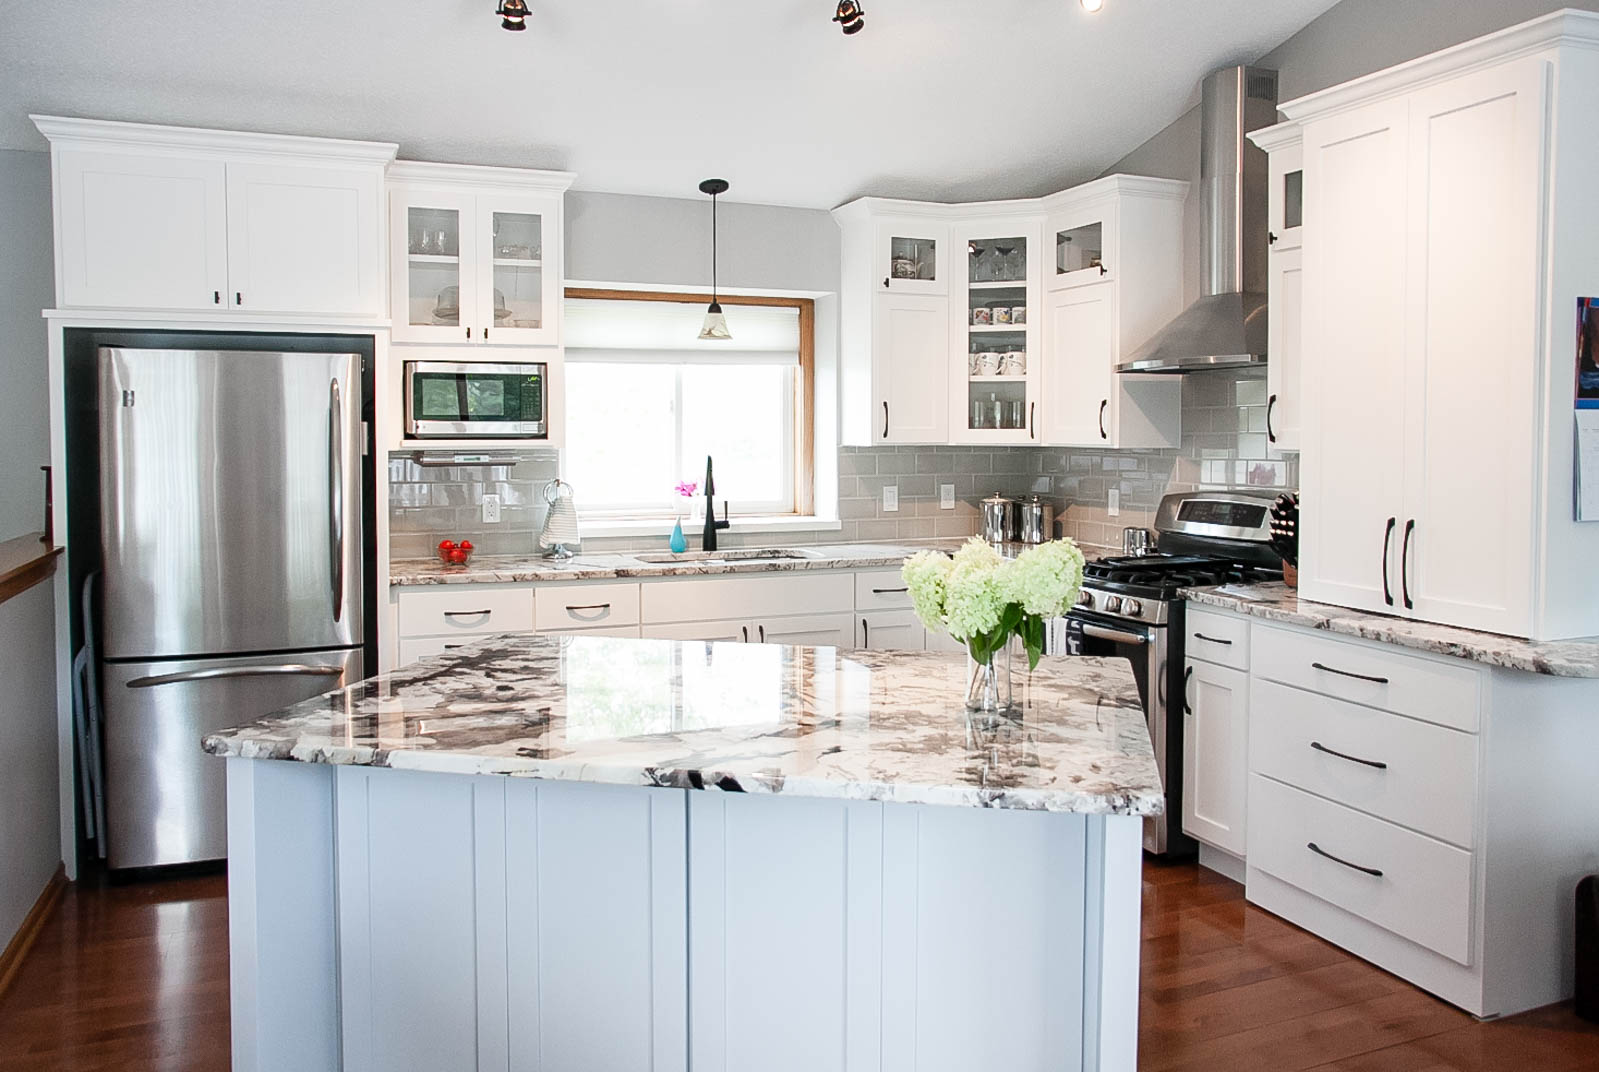 Kitchen Design Minneapolis Mn Kitchen Remodel Nowthen Mn Archives Franklin Builders